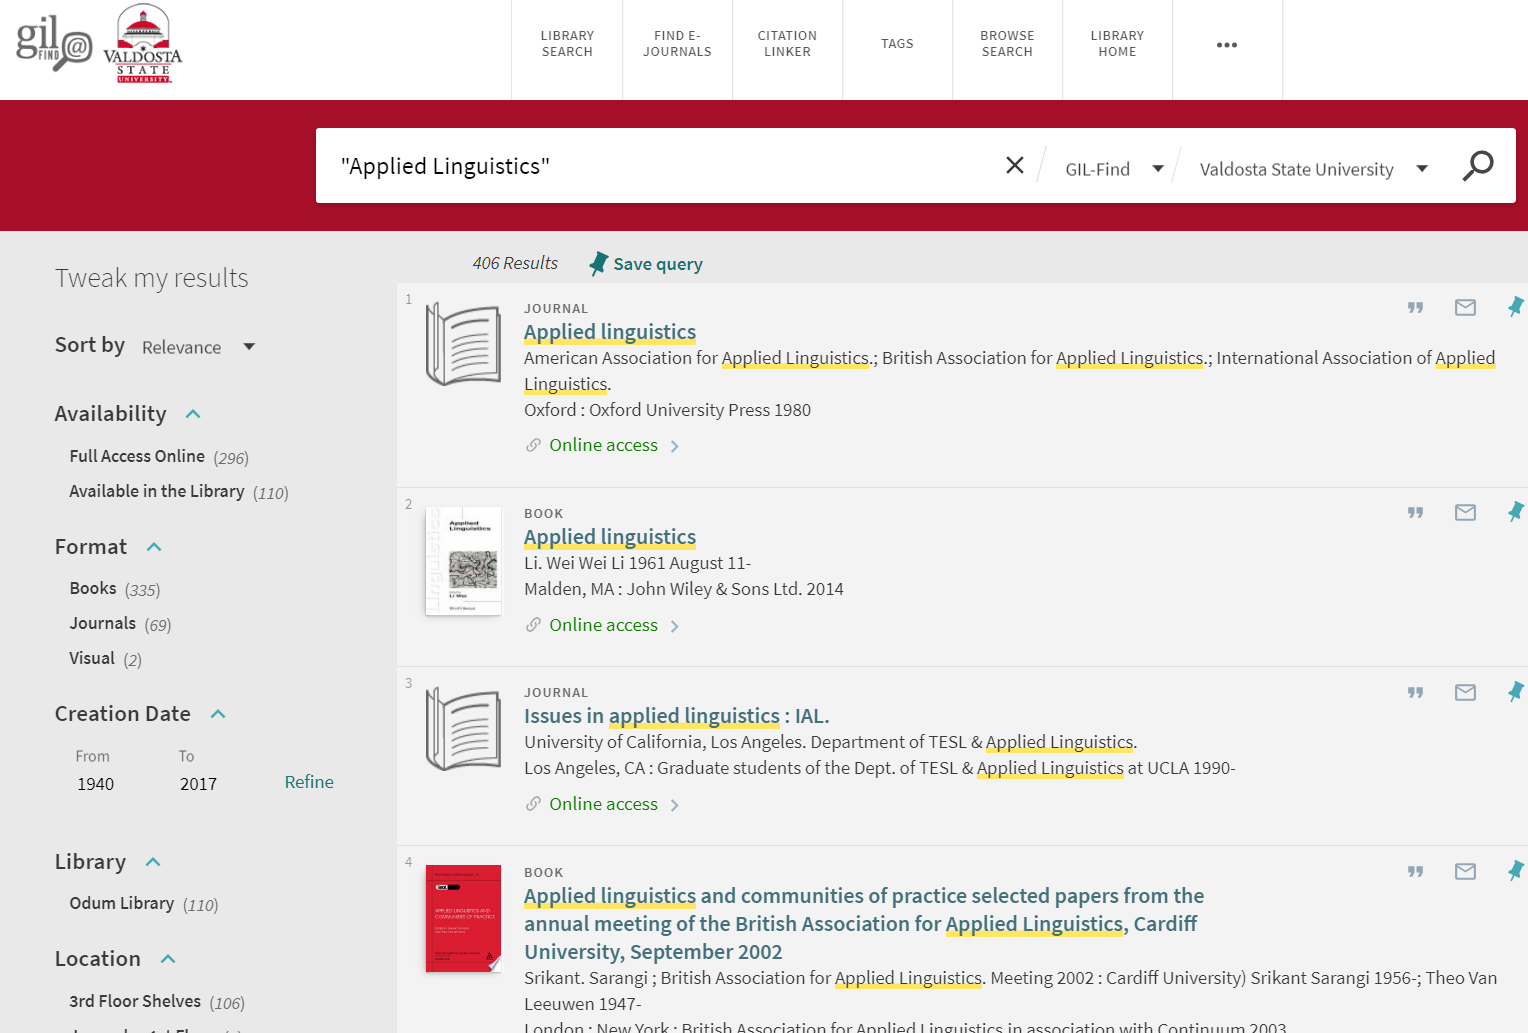 """Searching """"Applied Linguistics"""" in the GIL-Find library catalog."""